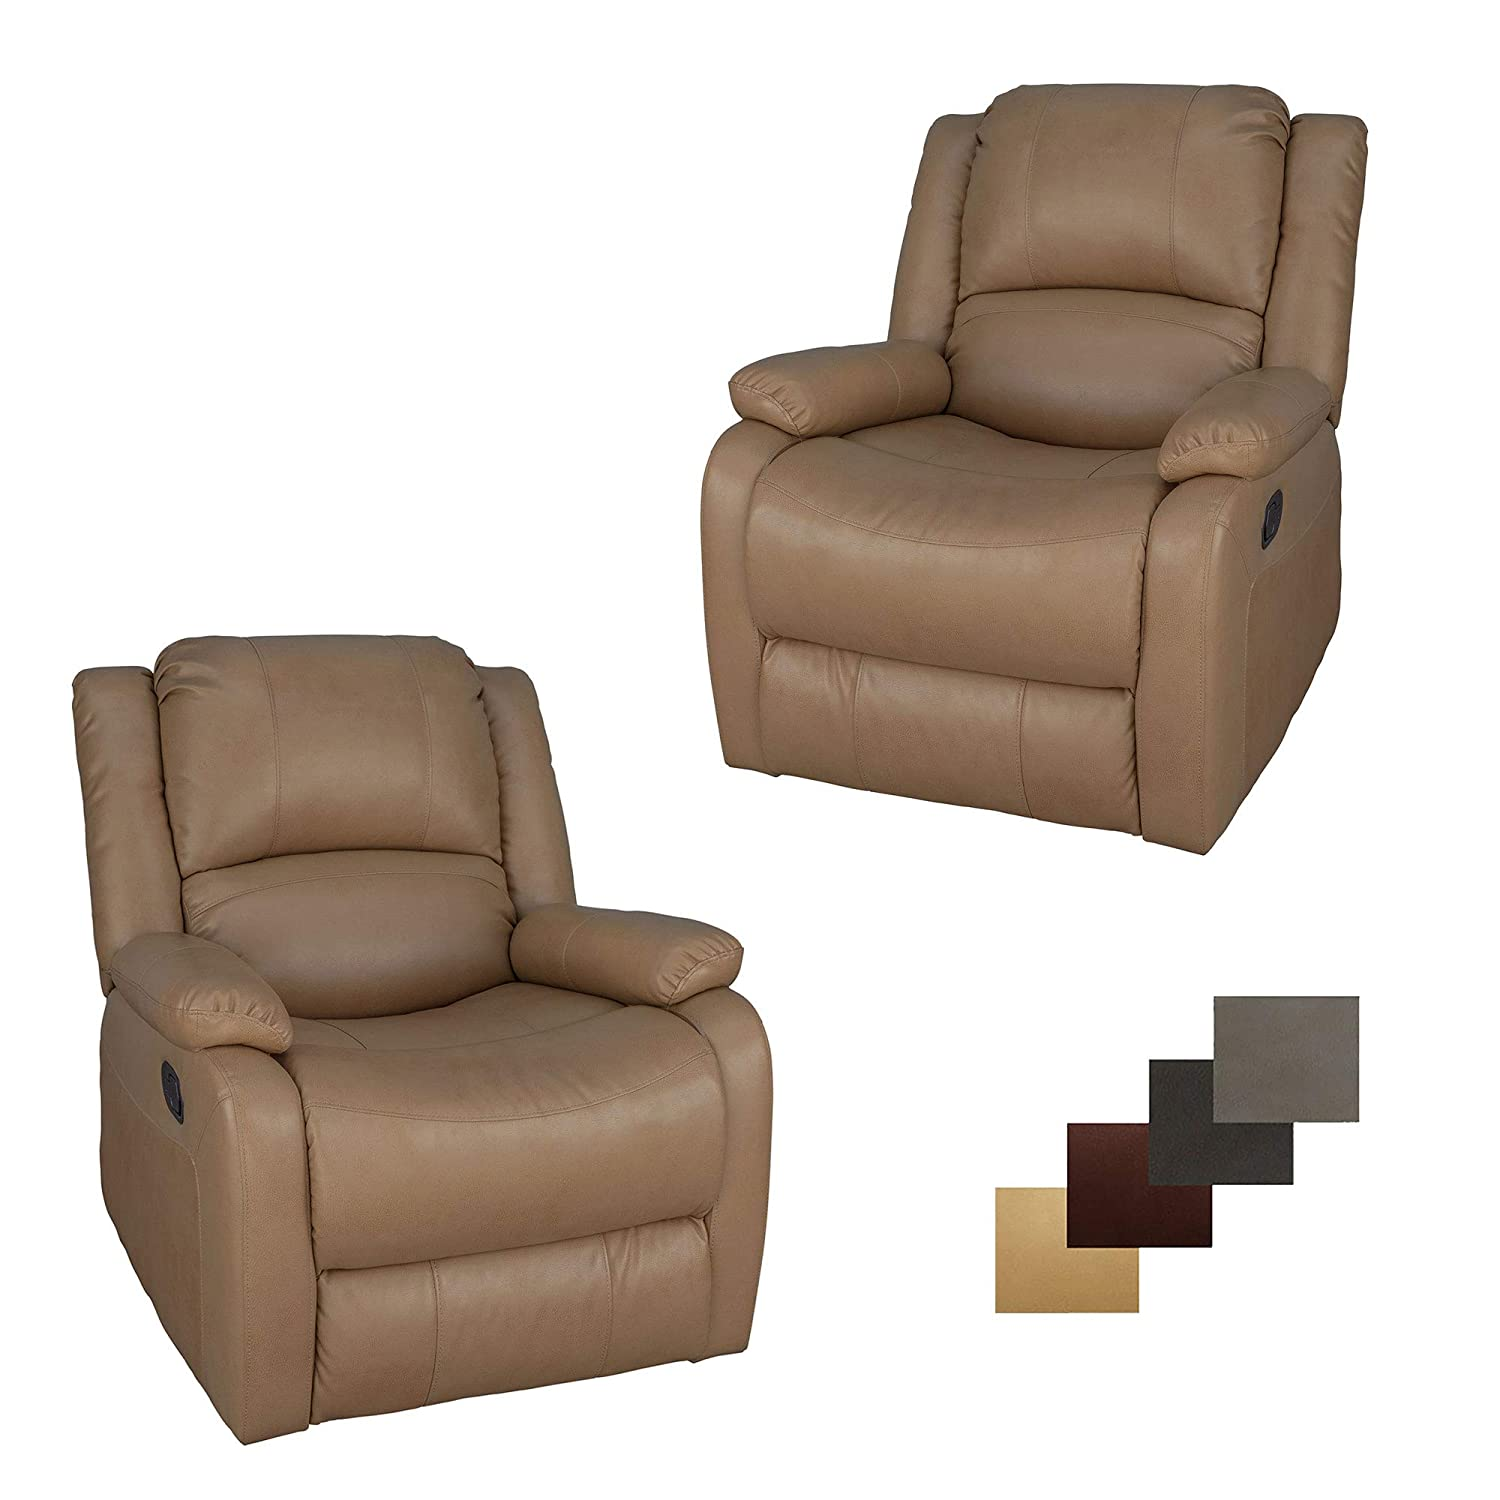 Amazon Com Set Of 2 Recpro Charles Collection 30 Swivel Glider